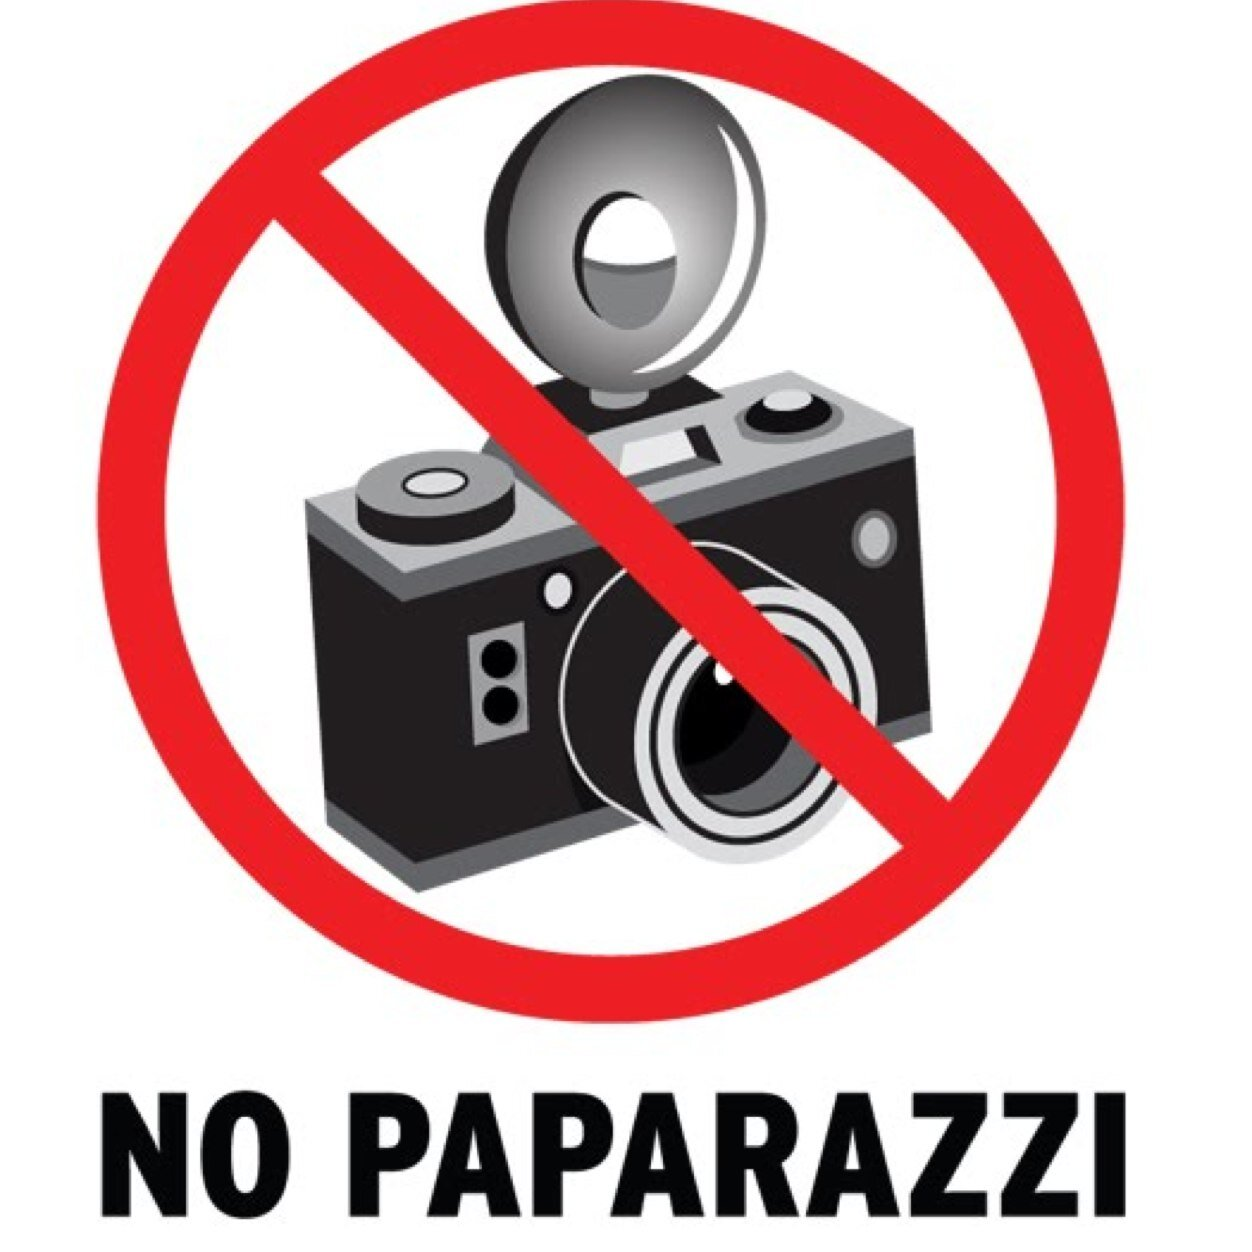 No paparazzi clip art cliparts for Paparazzi clipart